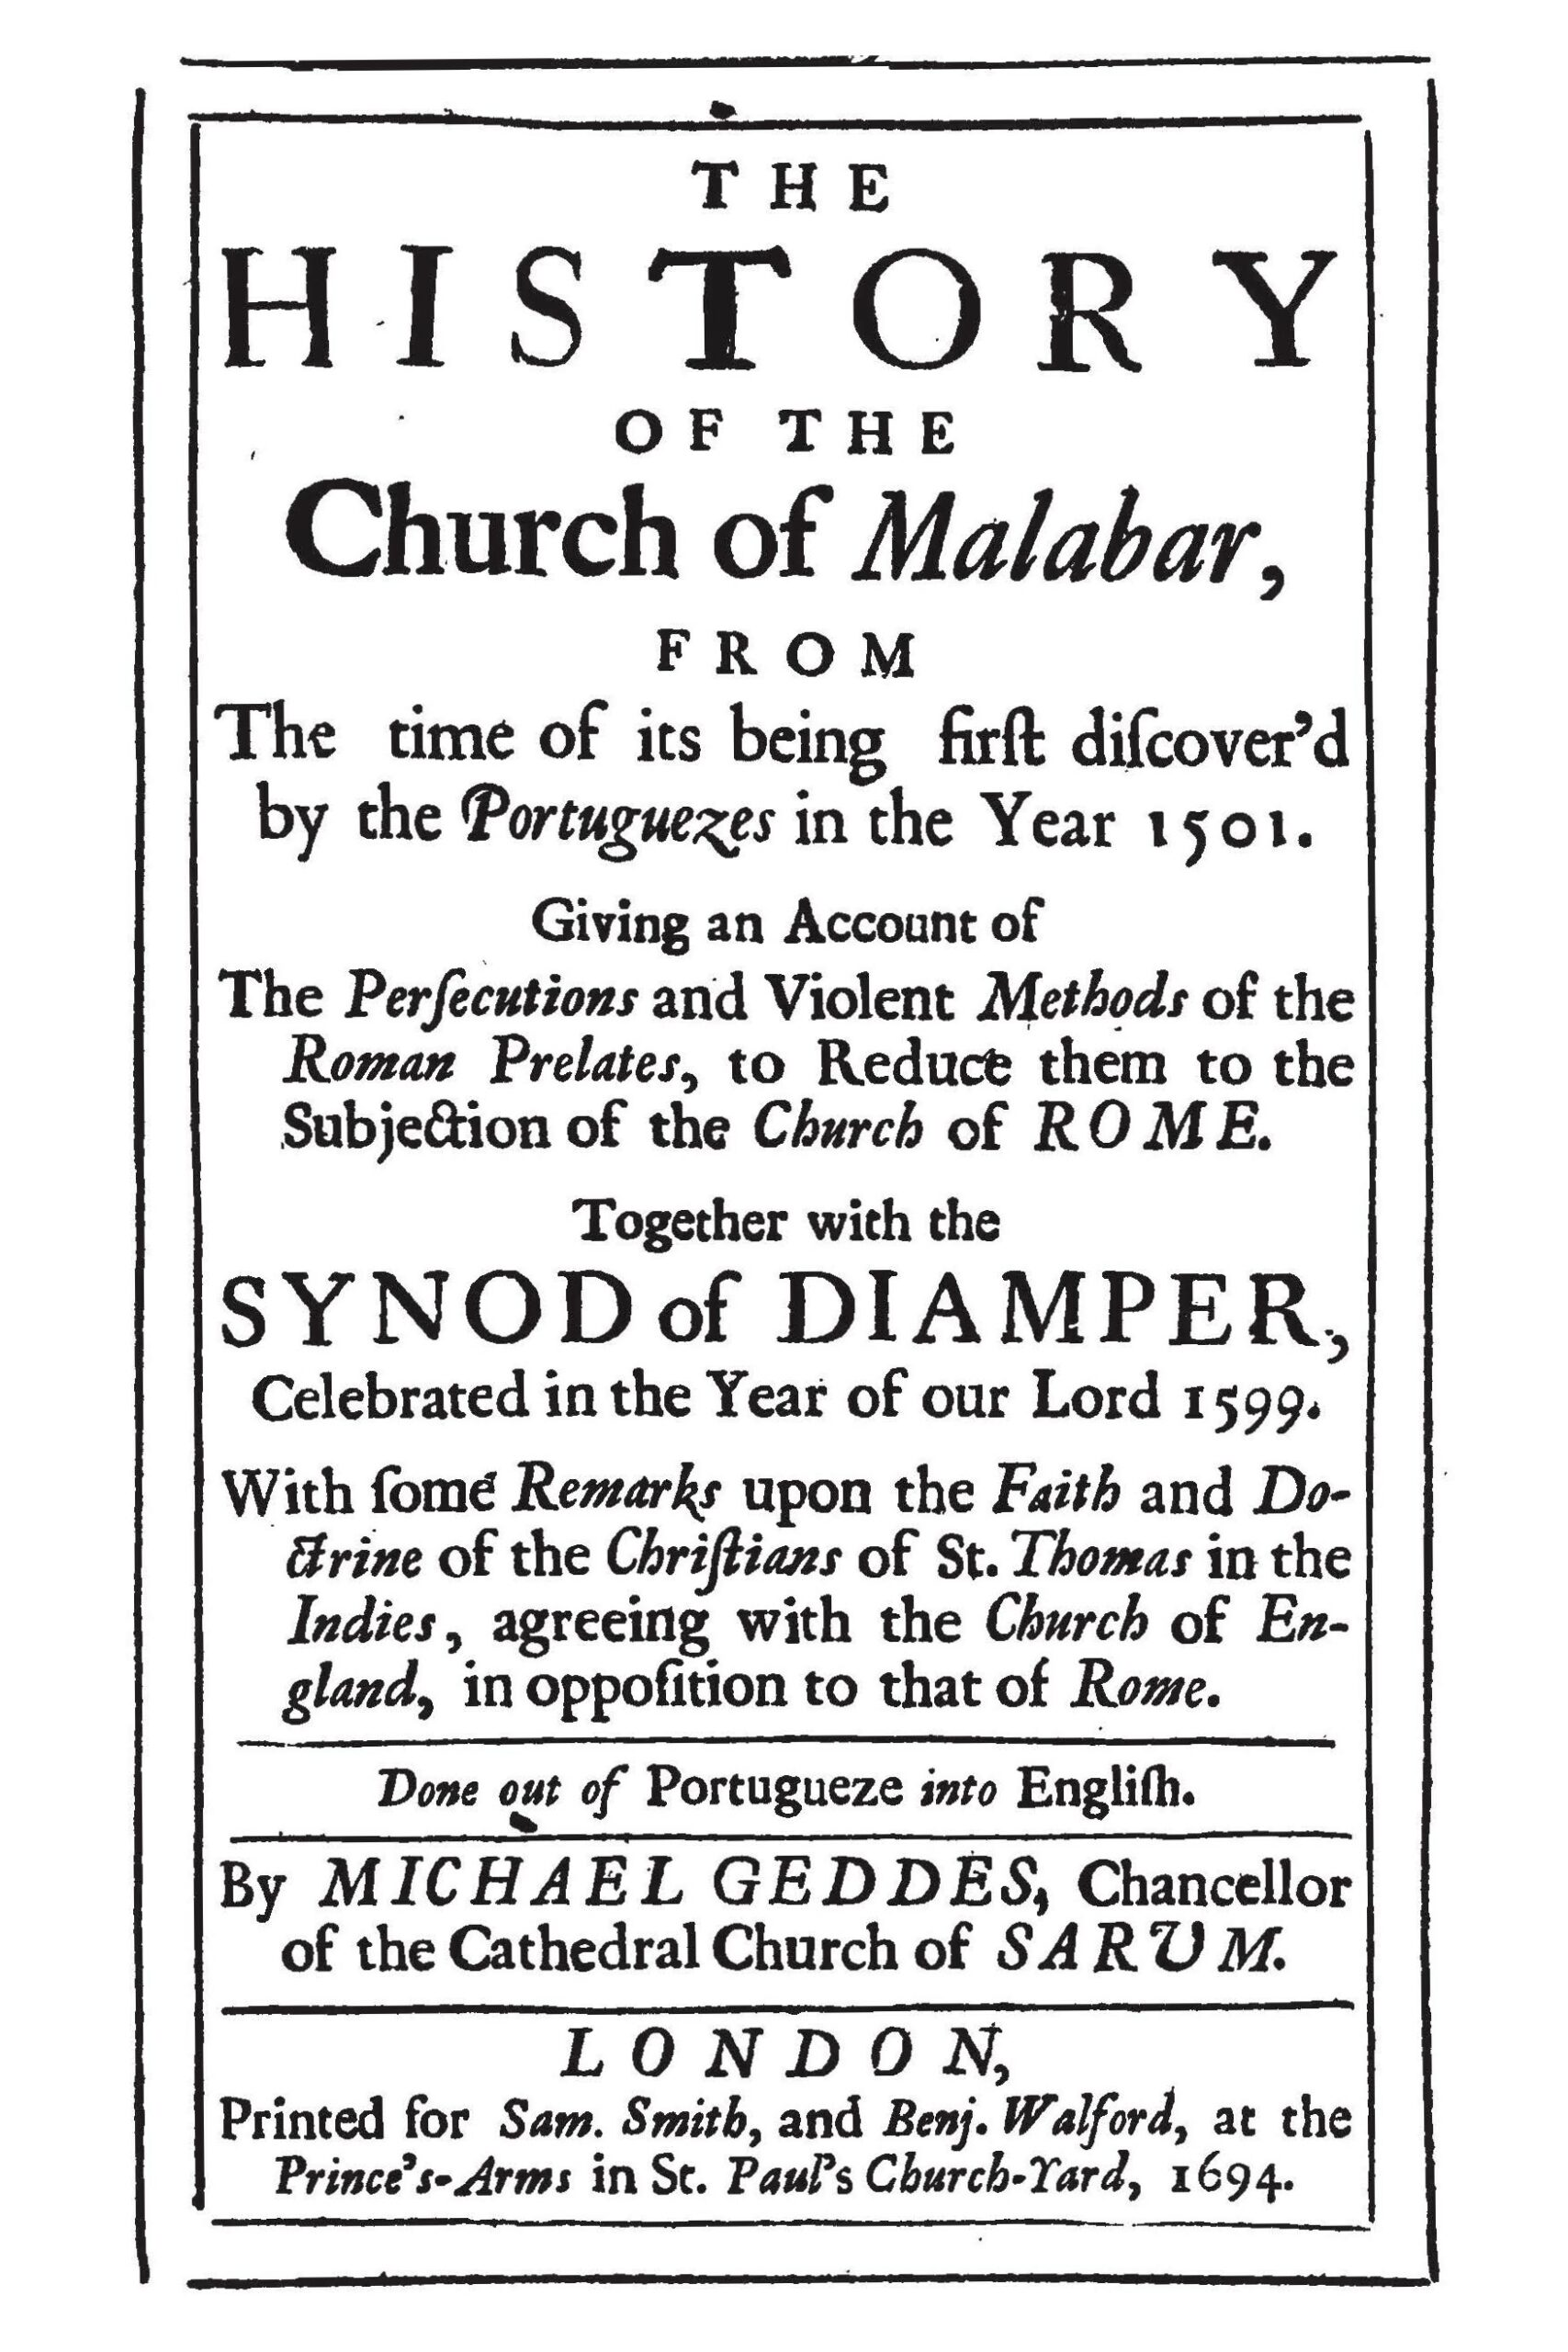 The History of the Church of Malabar